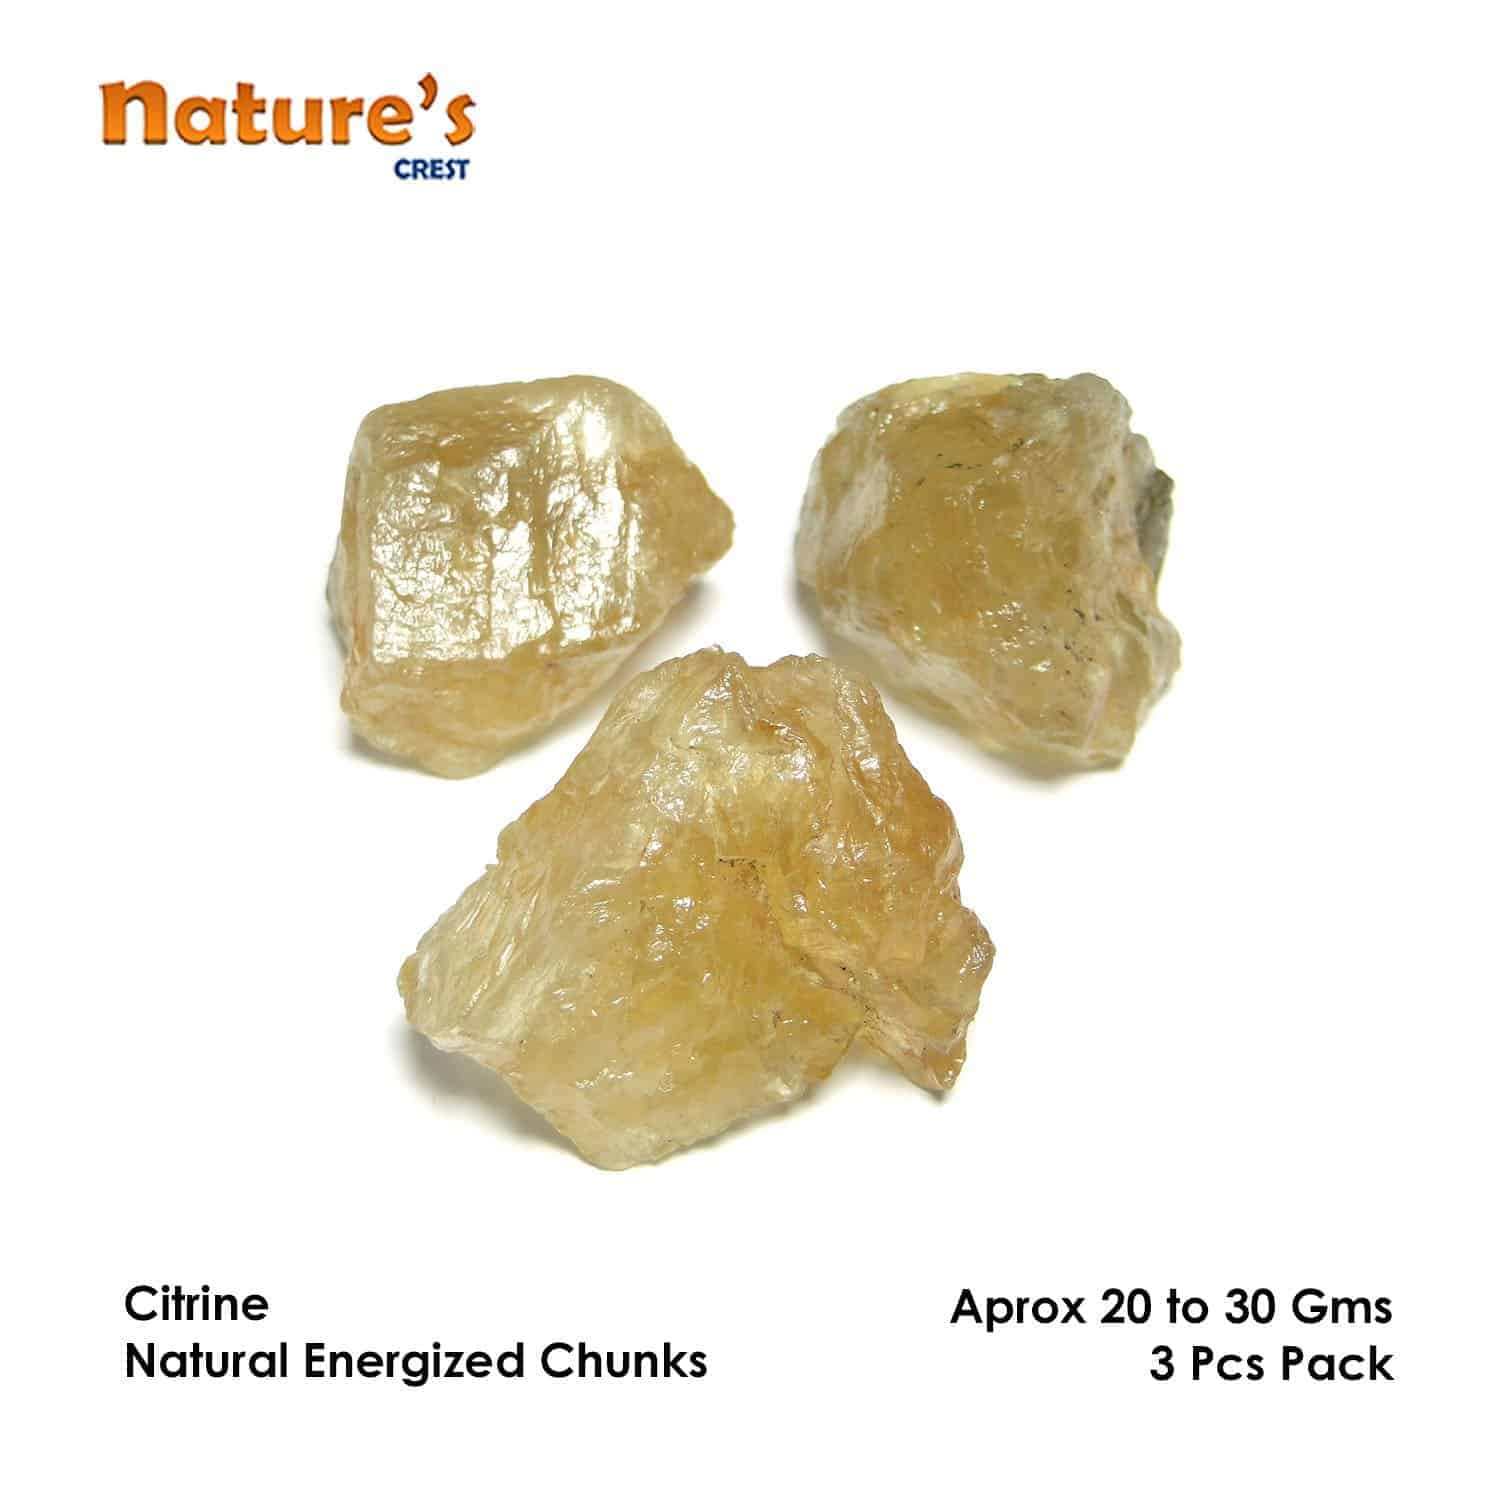 Citrine Natural Raw Rough Chunks Nature's Crest RC008 ₹0.00